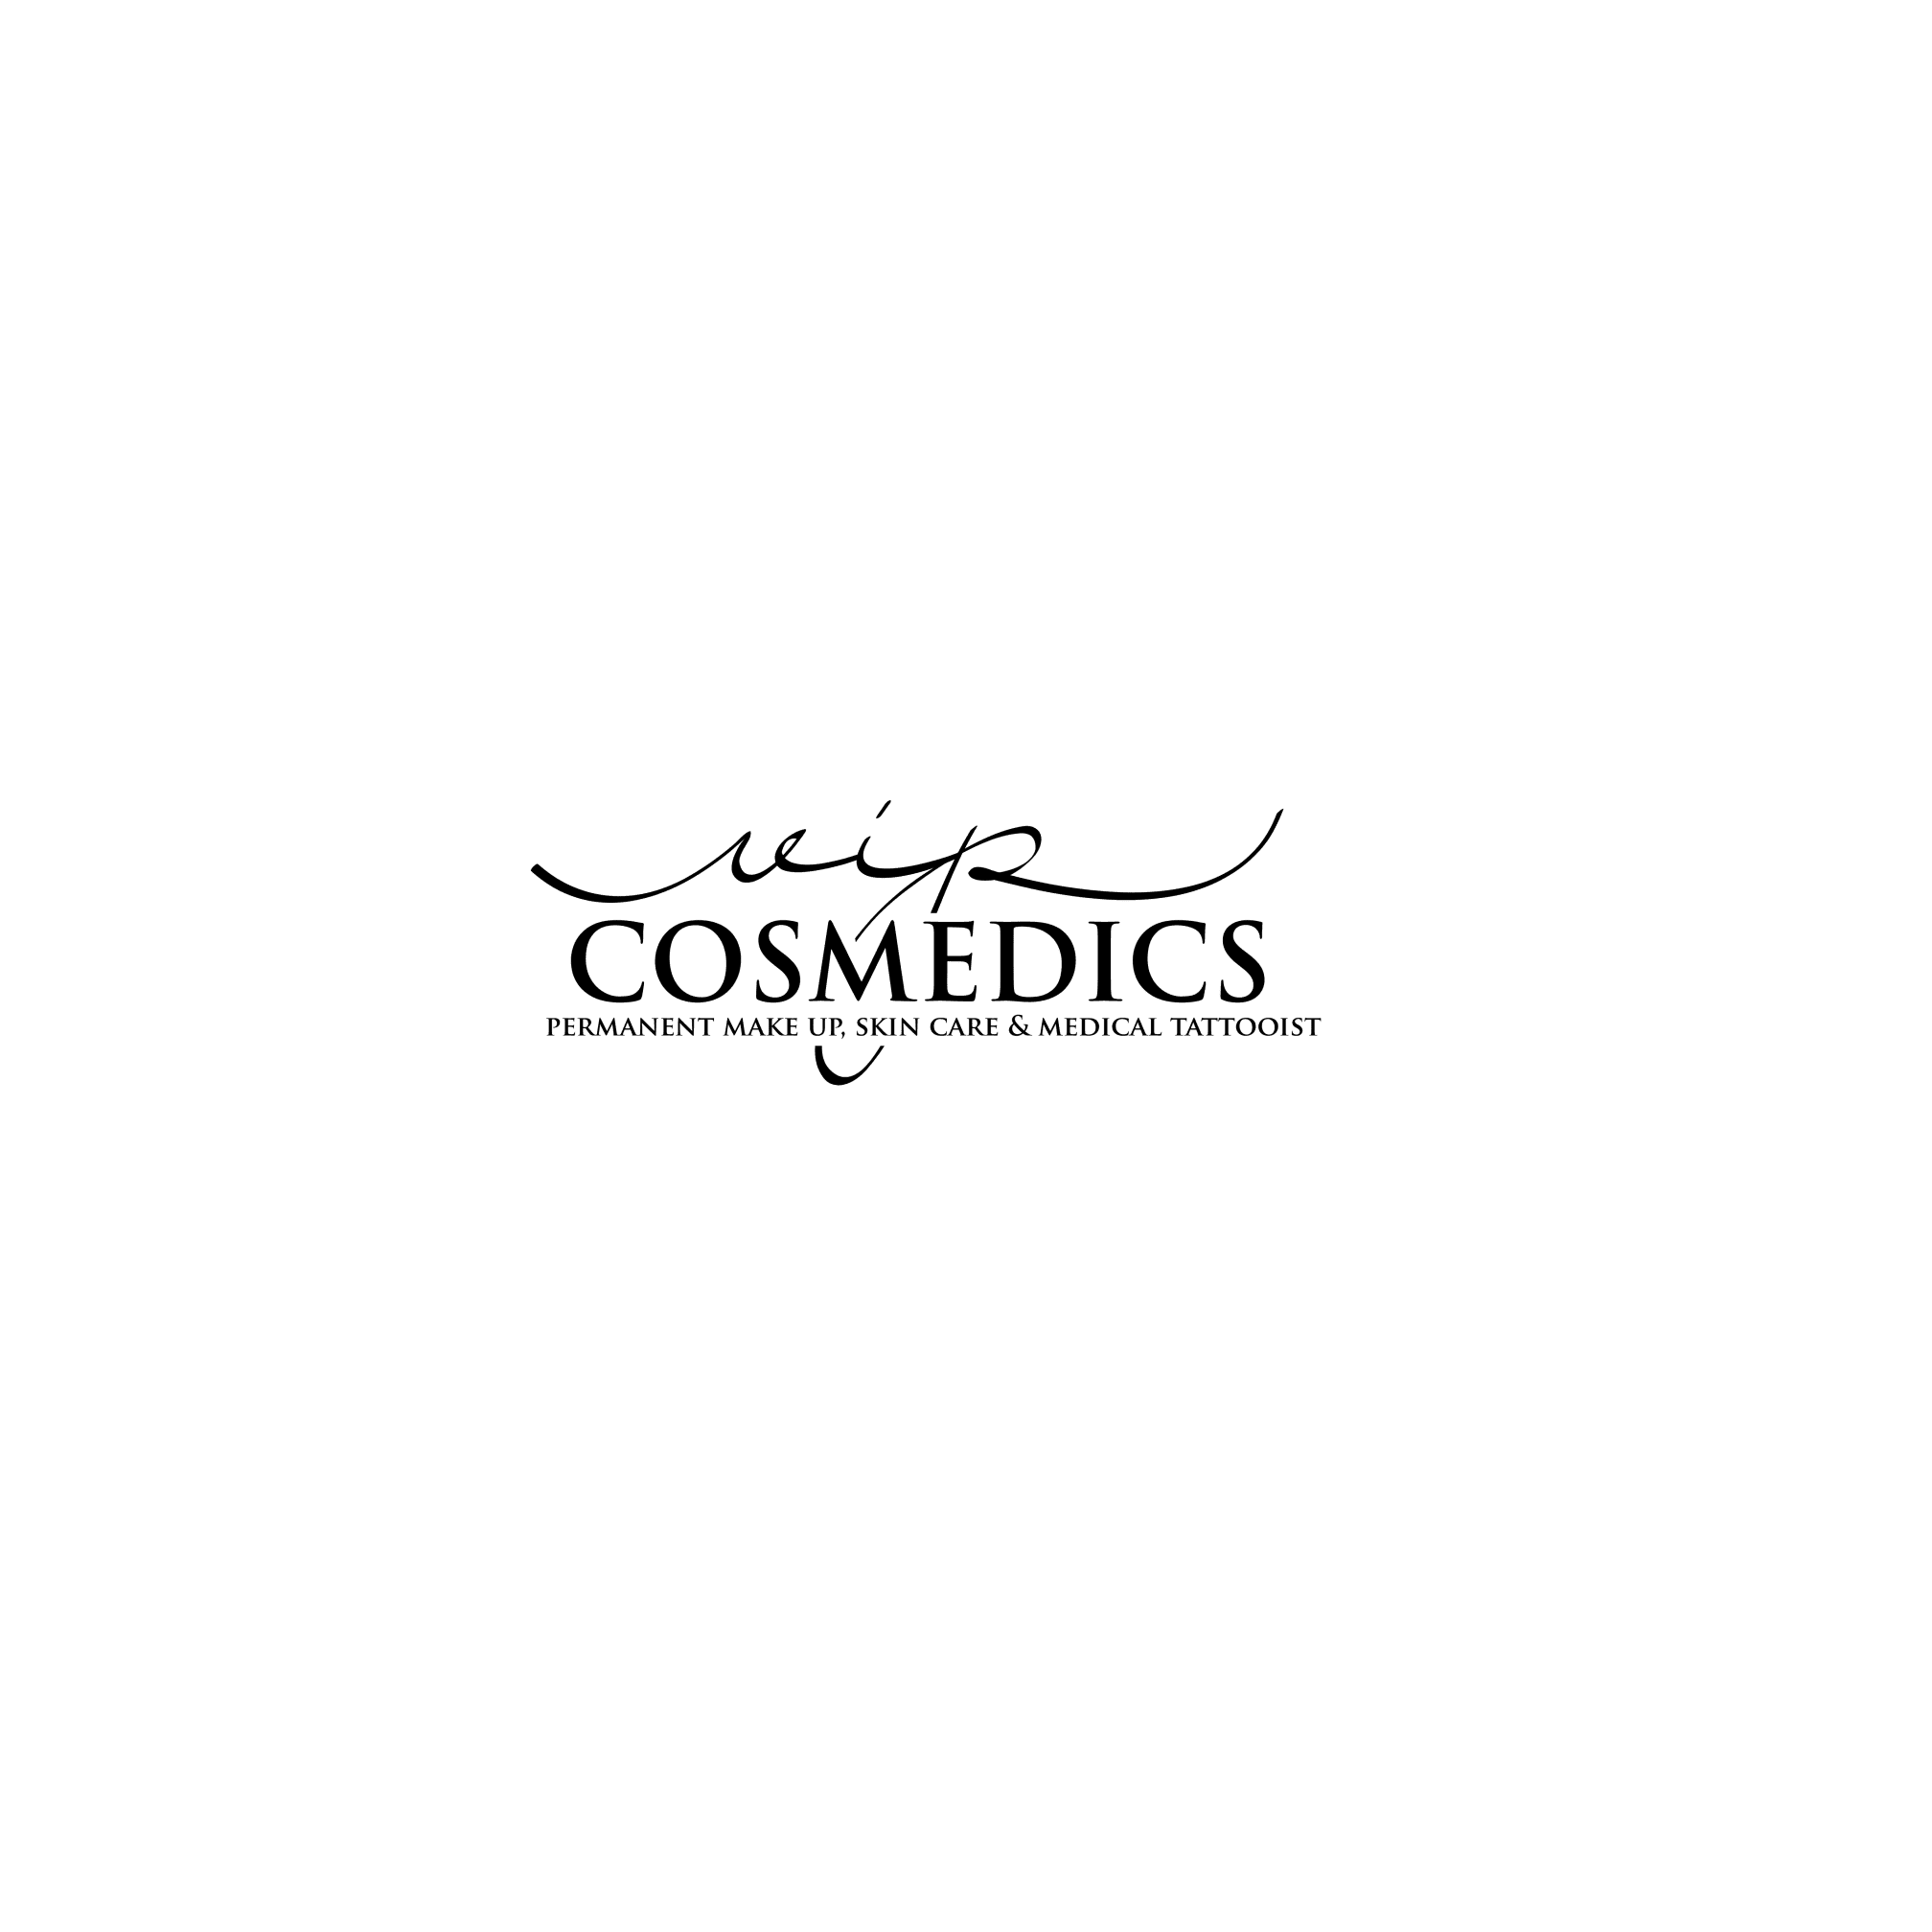 VIP Cosmedics - Tiverton, Devon EX16 6RZ - 07773 016664 | ShowMeLocal.com